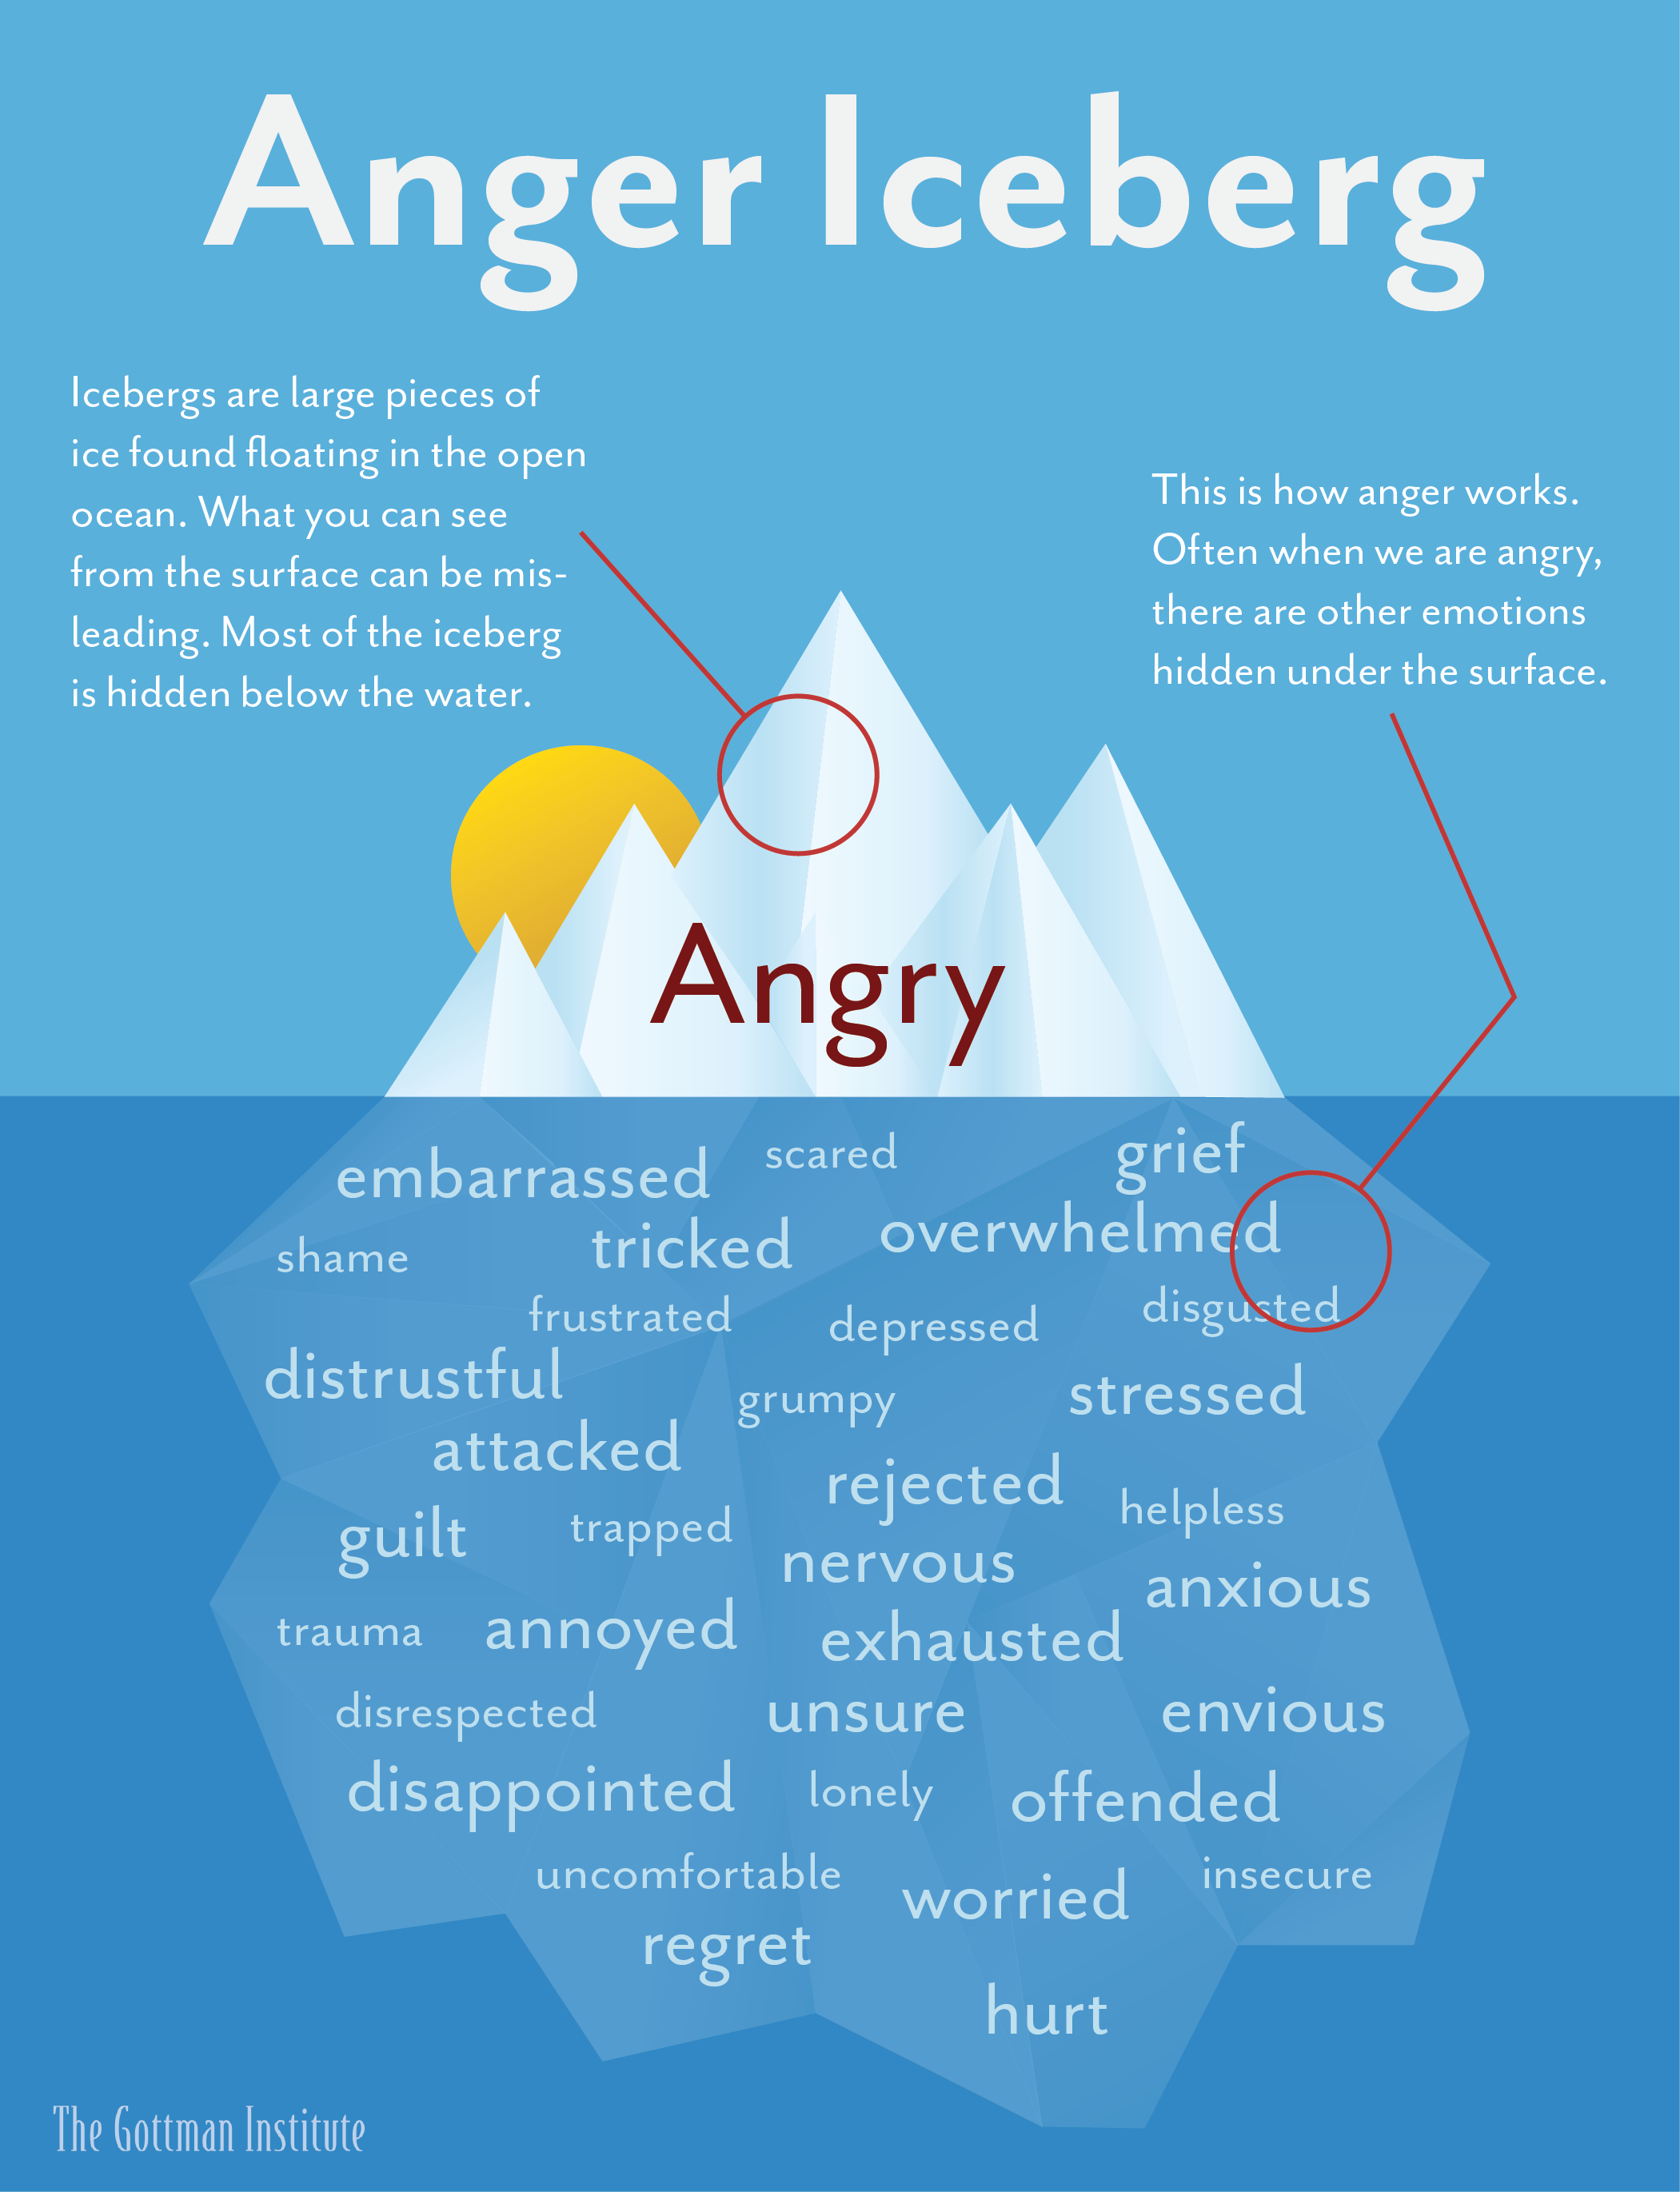 The Anger Iceberg